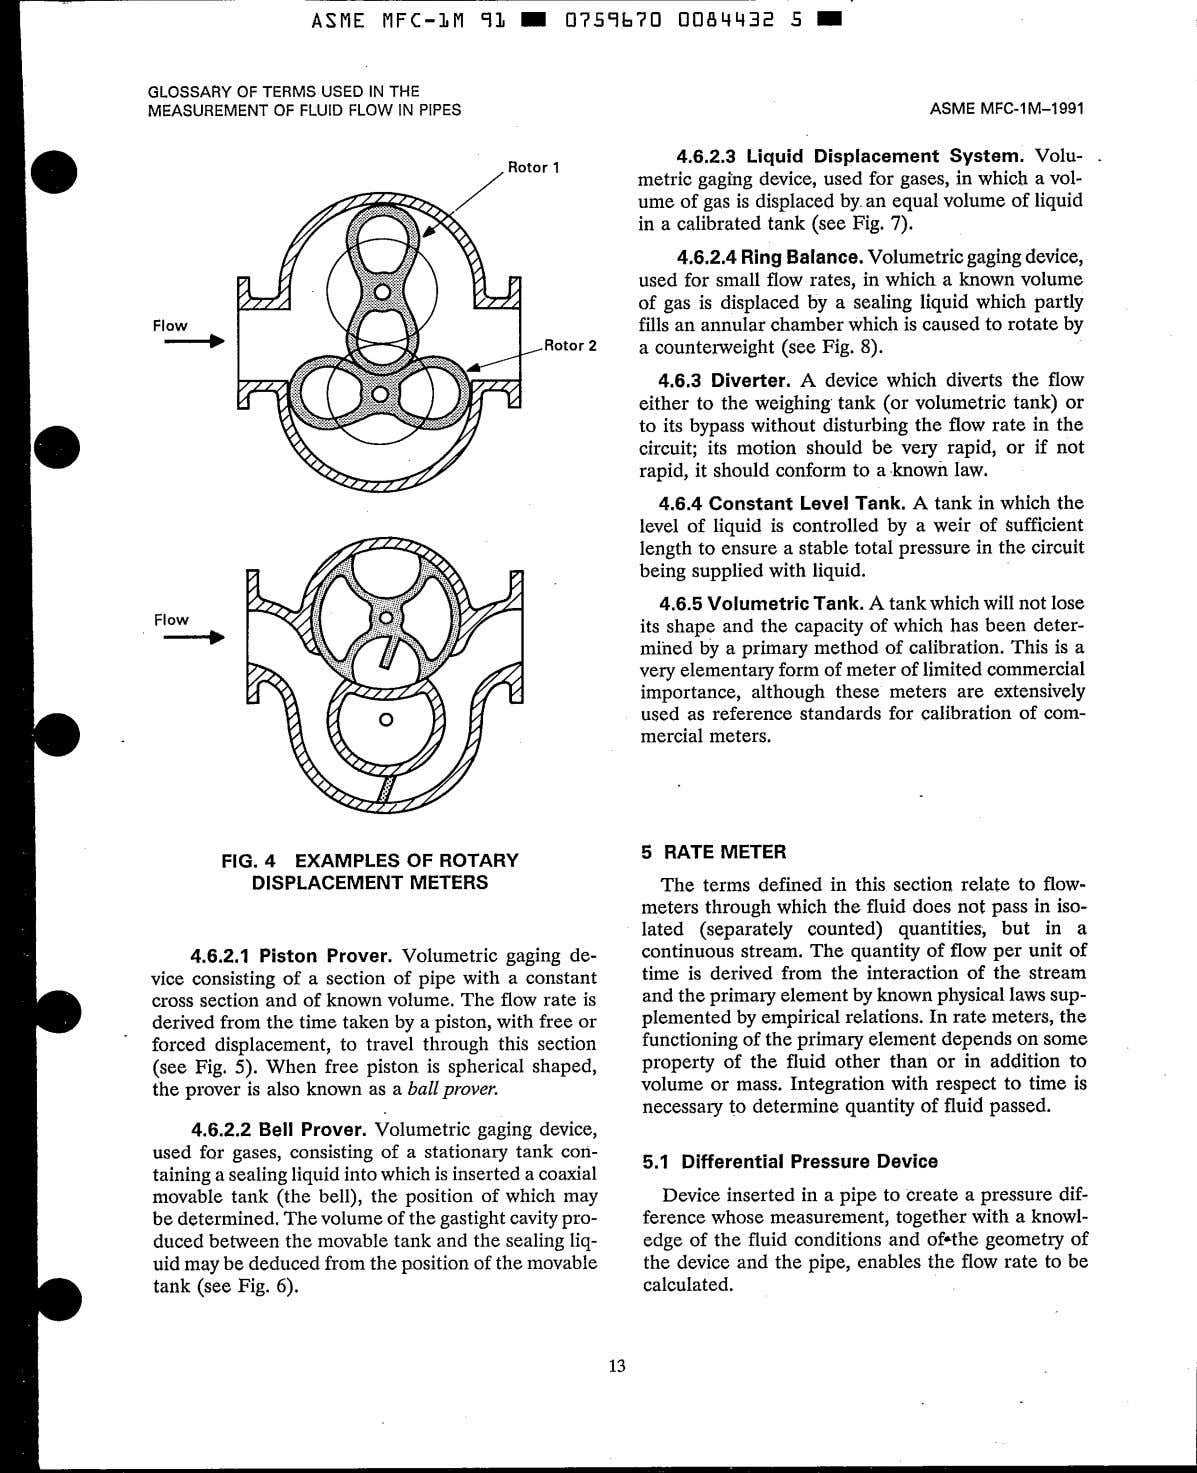 COPYRIGHT 1999 American Society of Mechanical Engineers Information Handling Services, 199 October 28, 1999 15:49:42